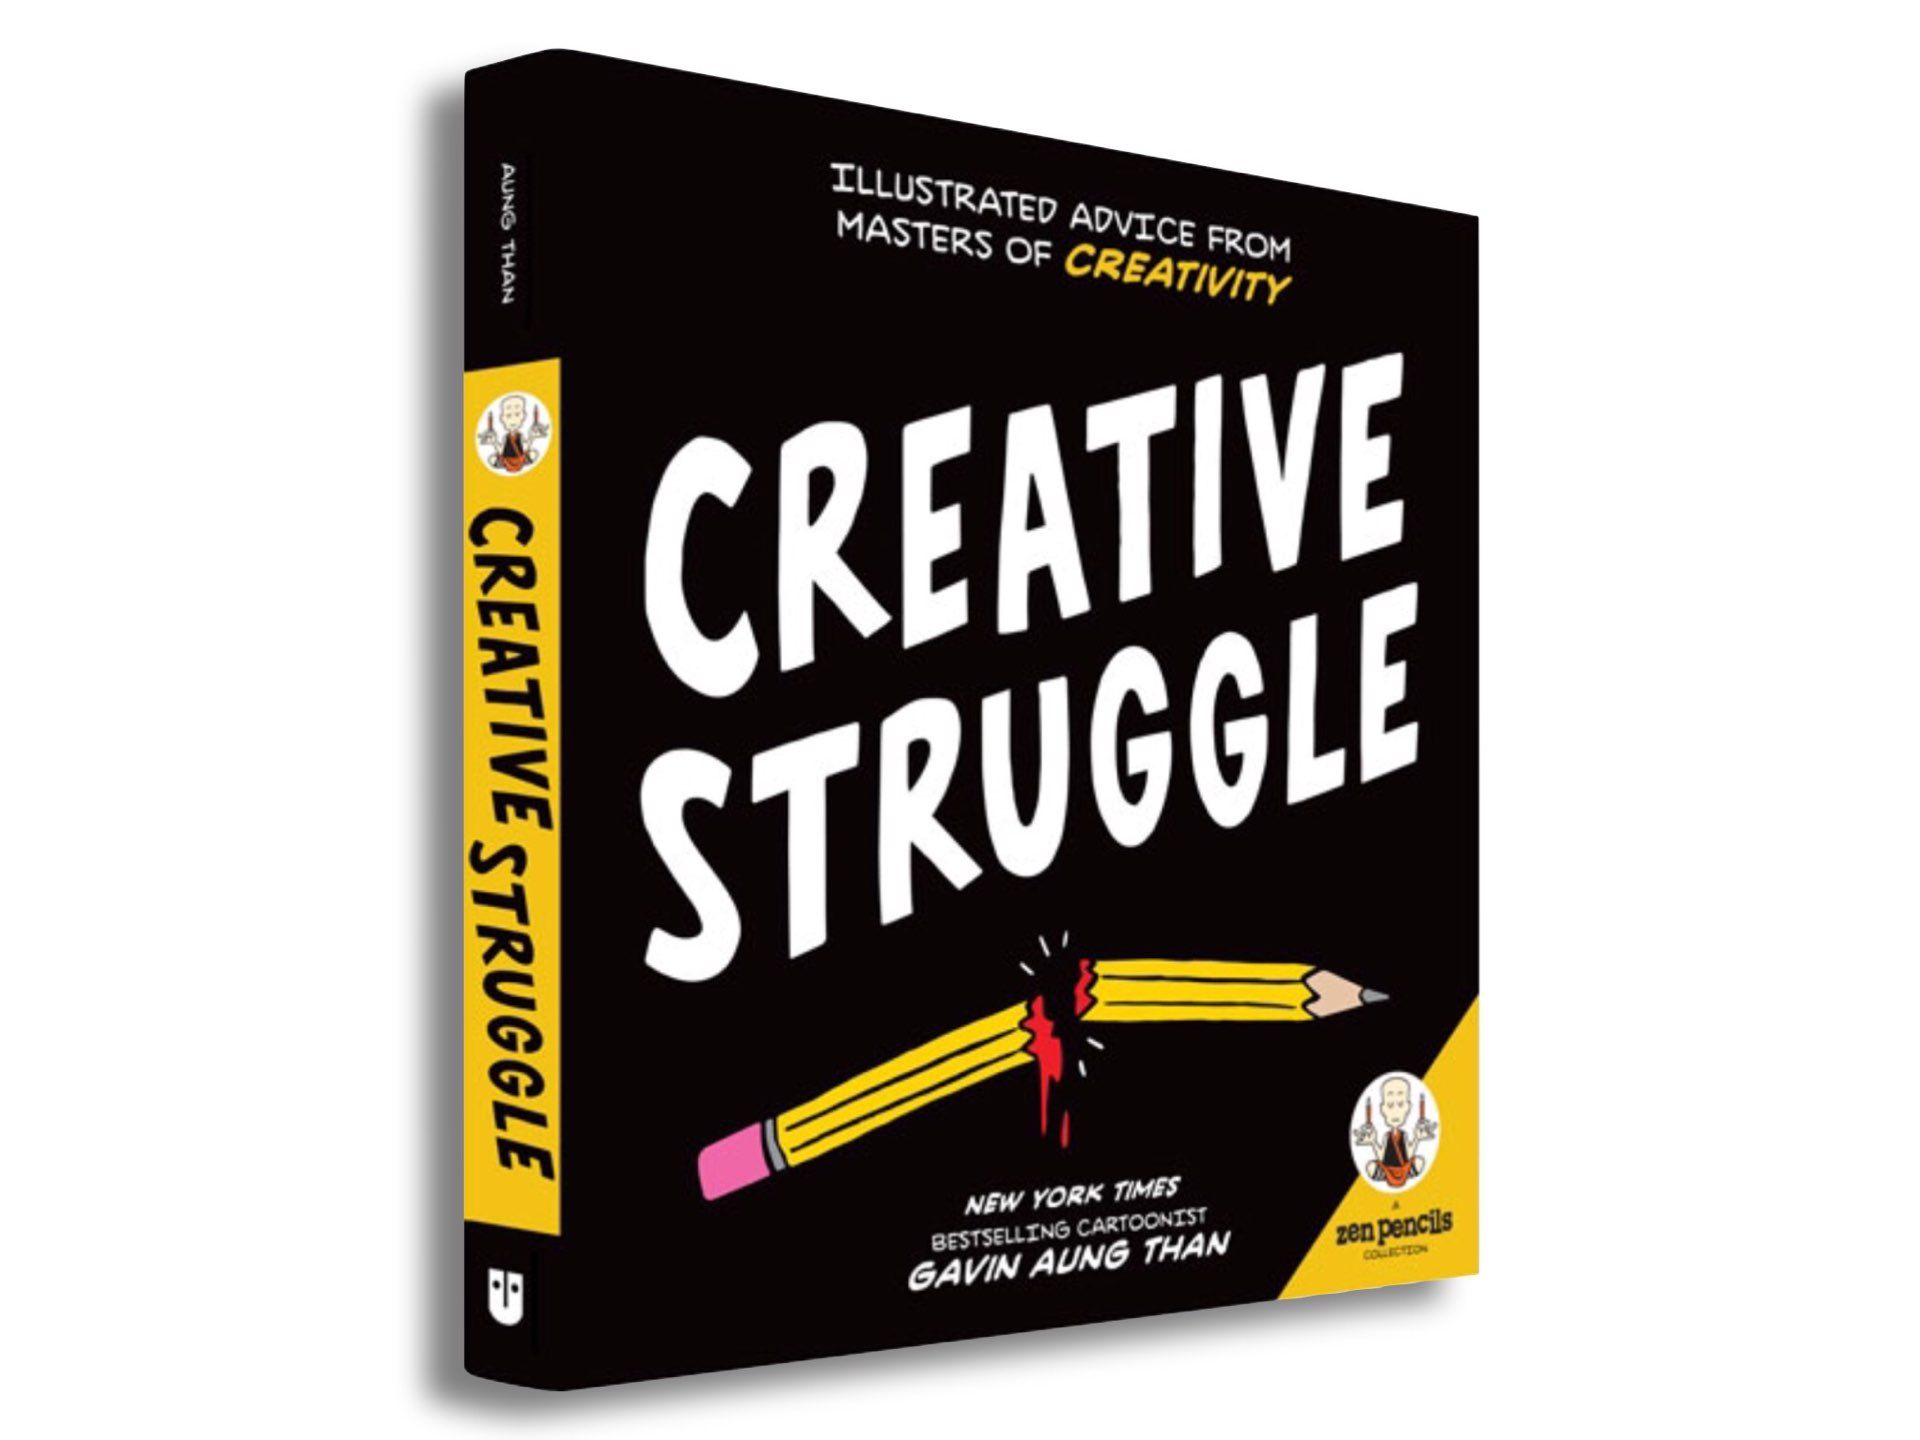 Zen Pencils Creative Struggle By Gavin Aung Than